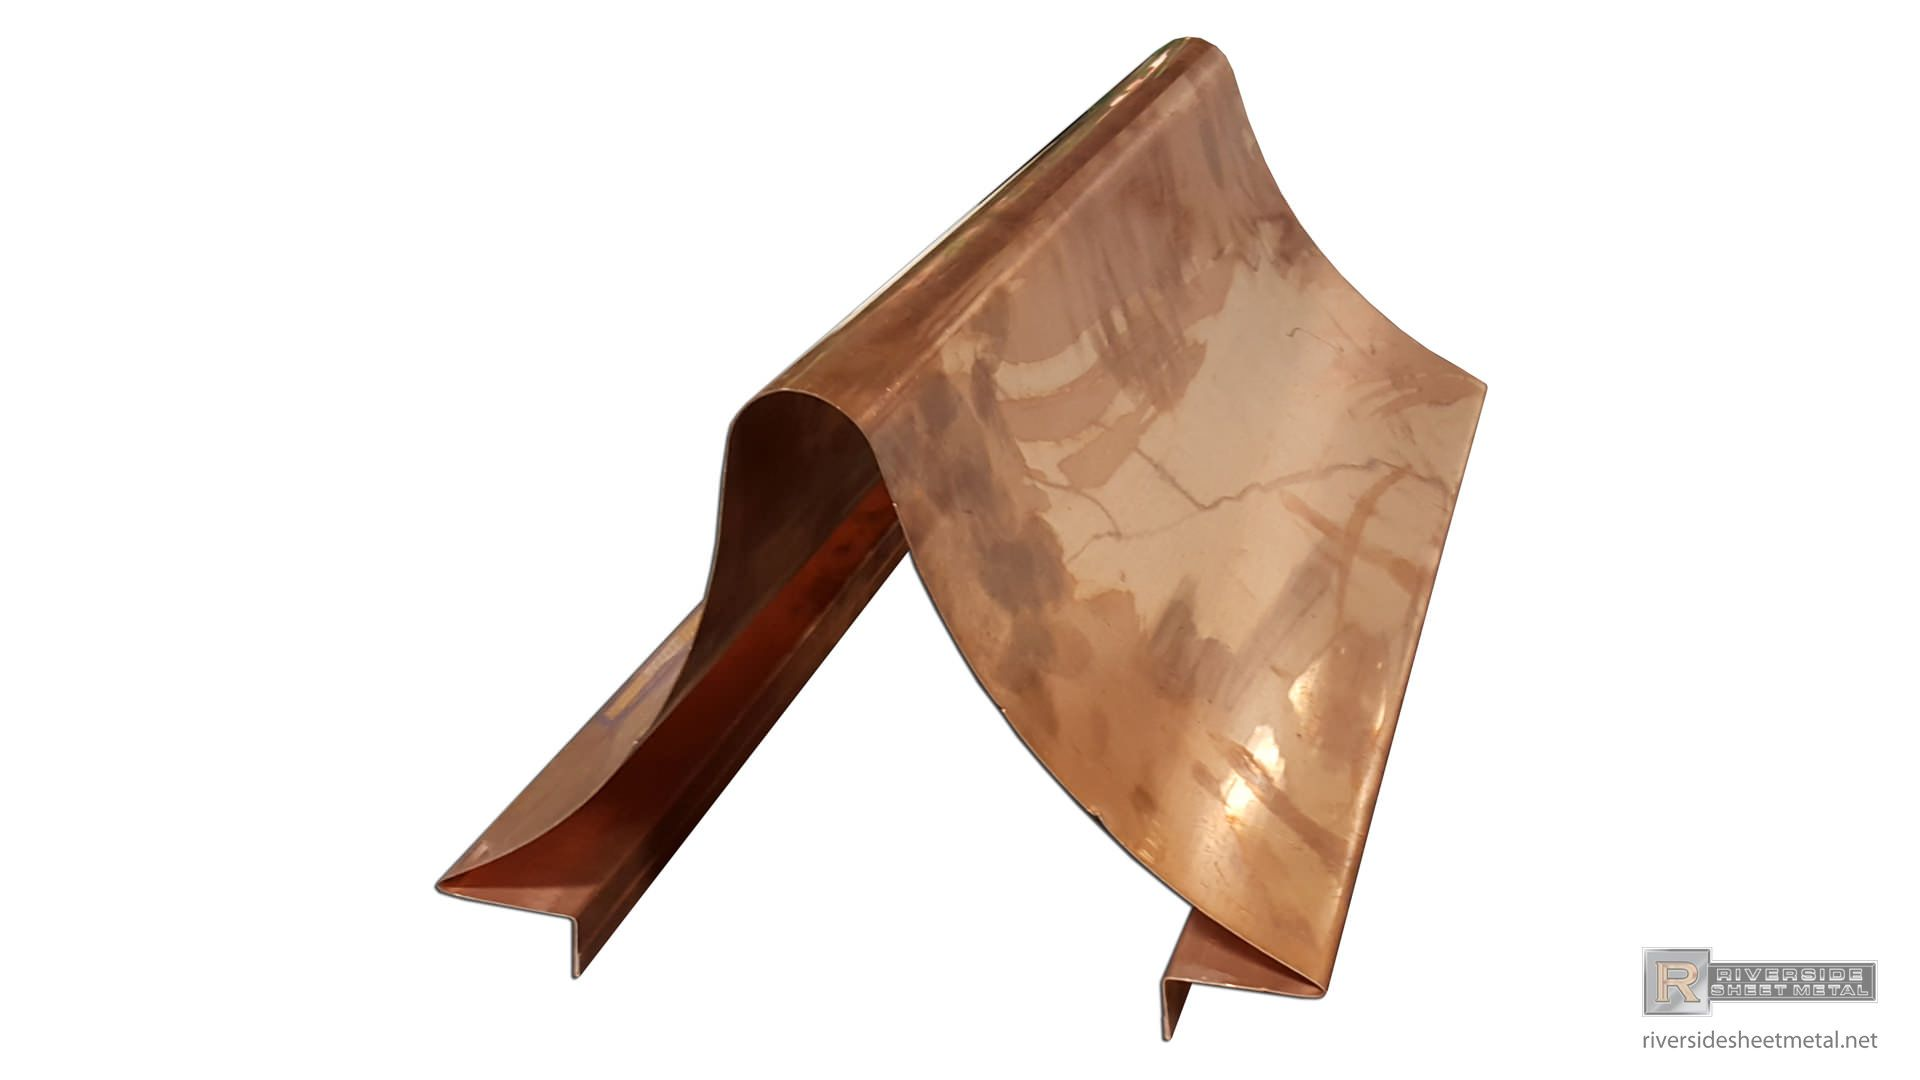 Custom Radius Copper Ridge Cap Example View 1 Butterfly Chair Copper Roofing